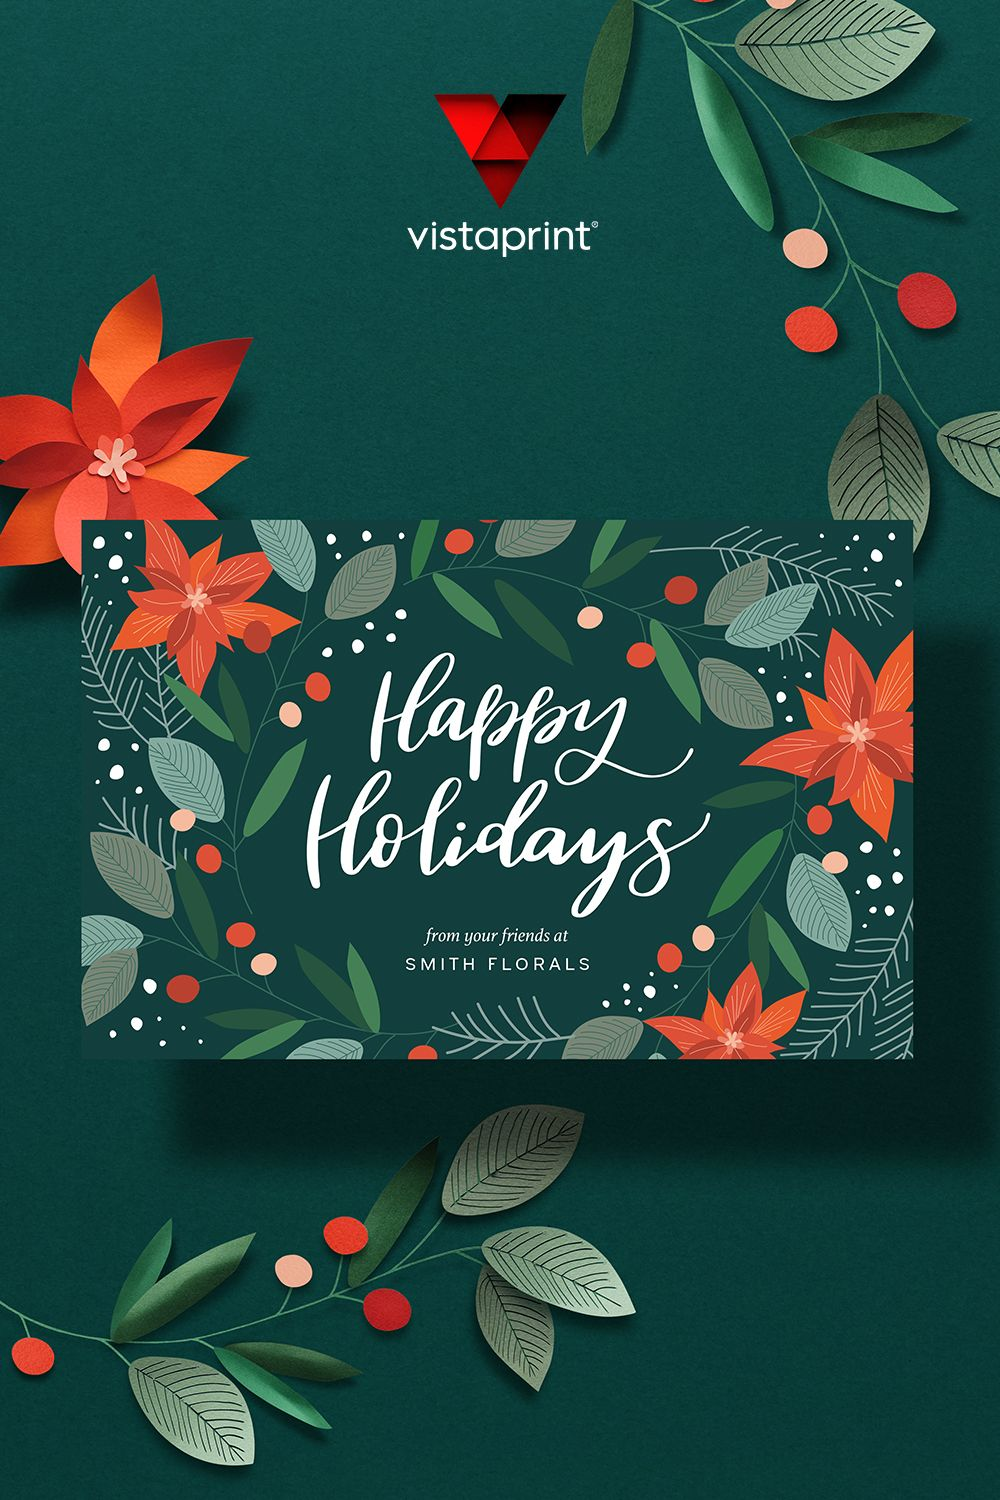 Make your holiday cards so unique, they light up your loved-one's day. From embossed foil to scalloped edges, these little touches help make your card feel extra special.